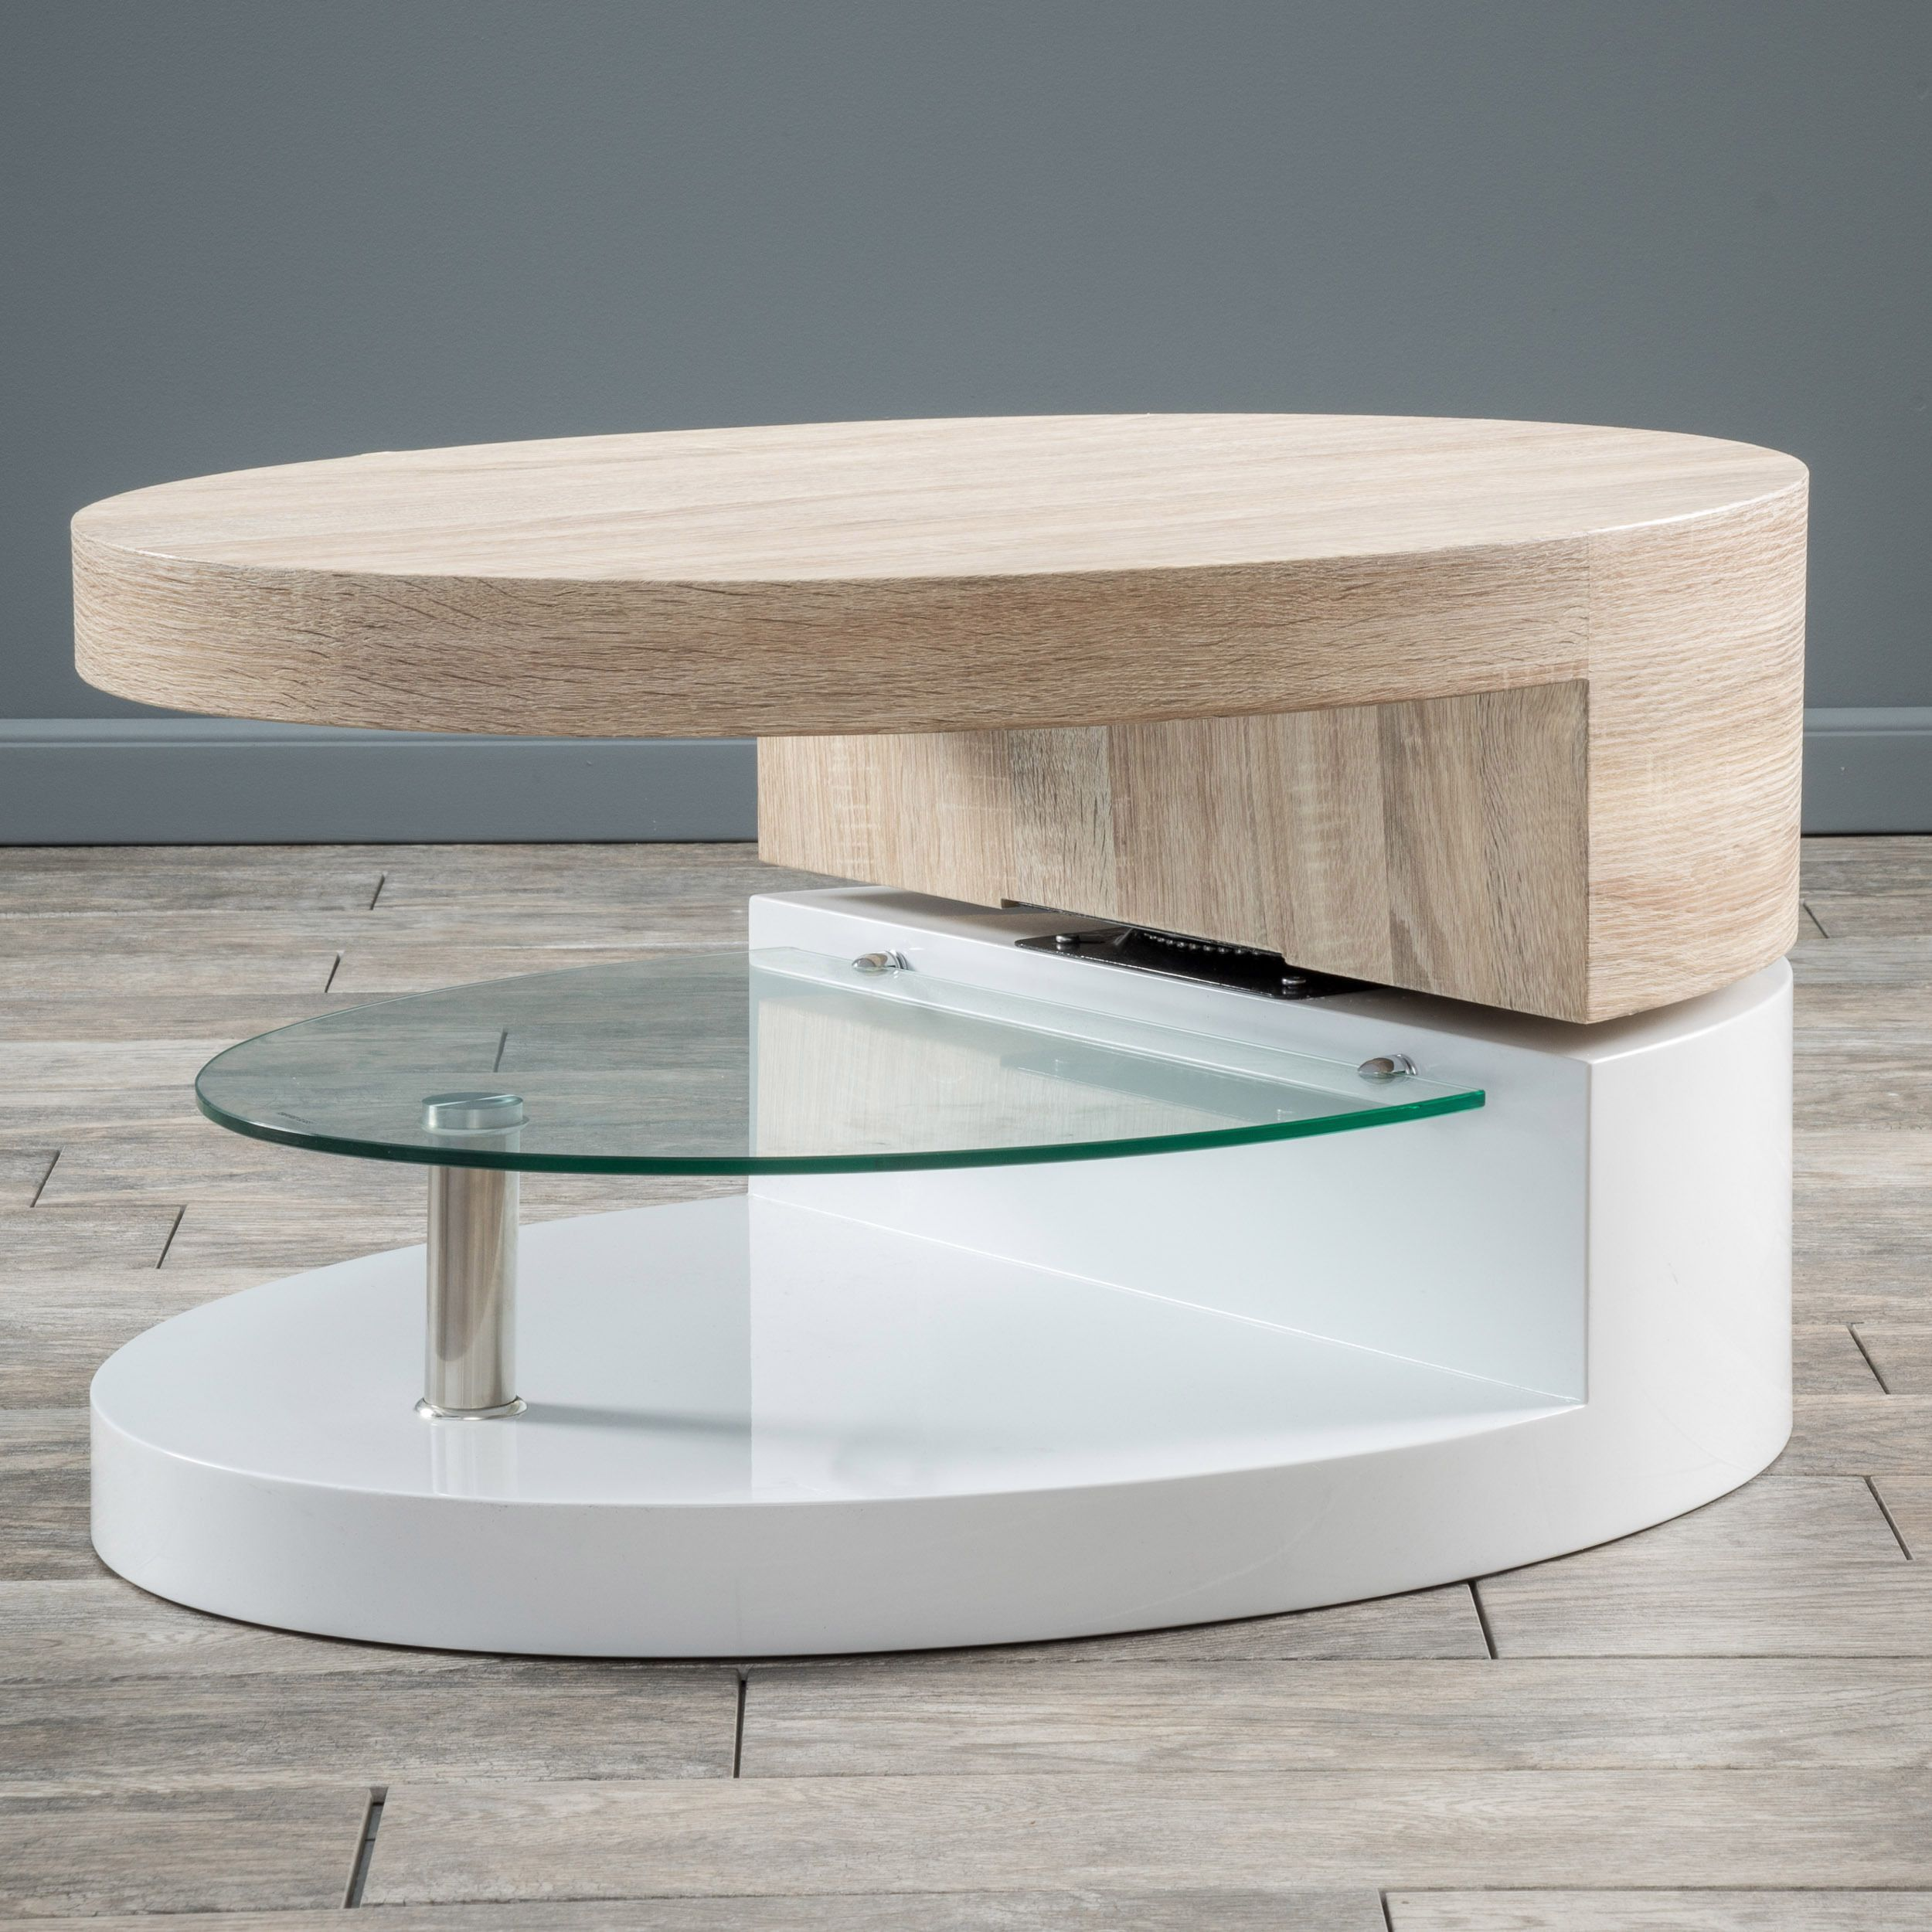 Small Oval Mod Rotatable Coffee Table With Glass By Christopher Knight Home  (Small Glossy White Coffee Table)